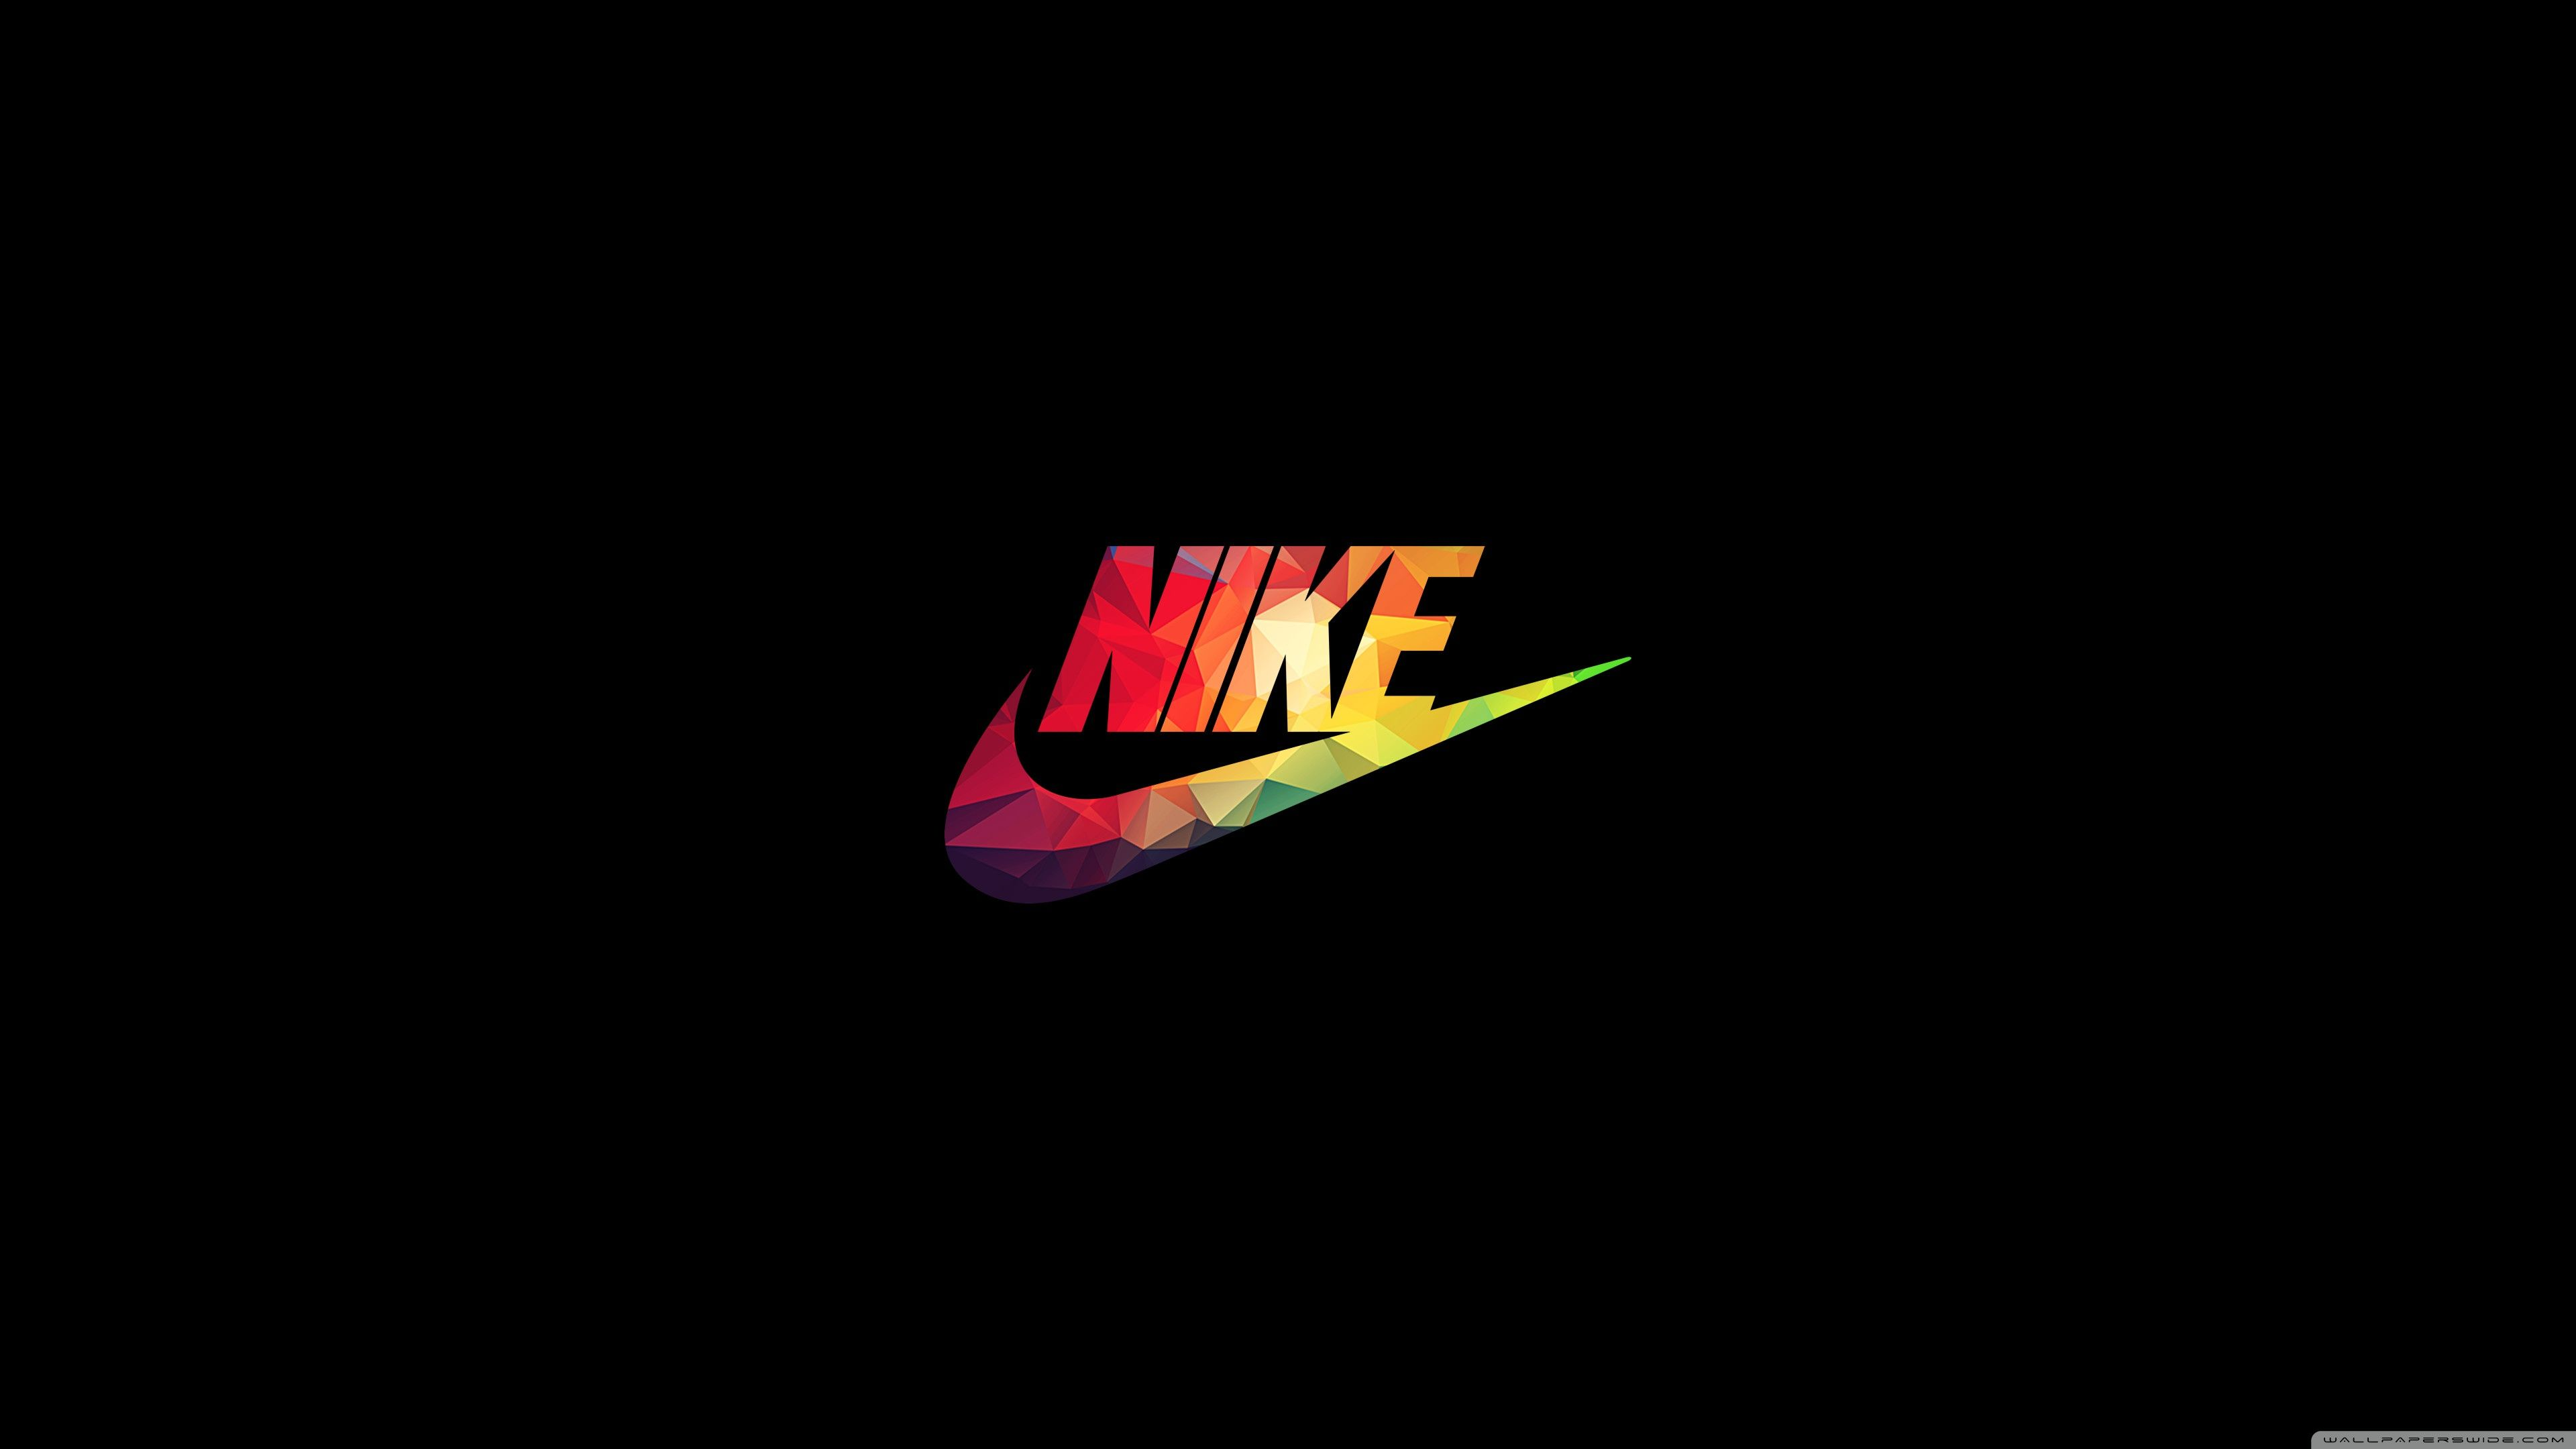 4K Nike Wallpapers , Top Free 4K Nike Backgrounds